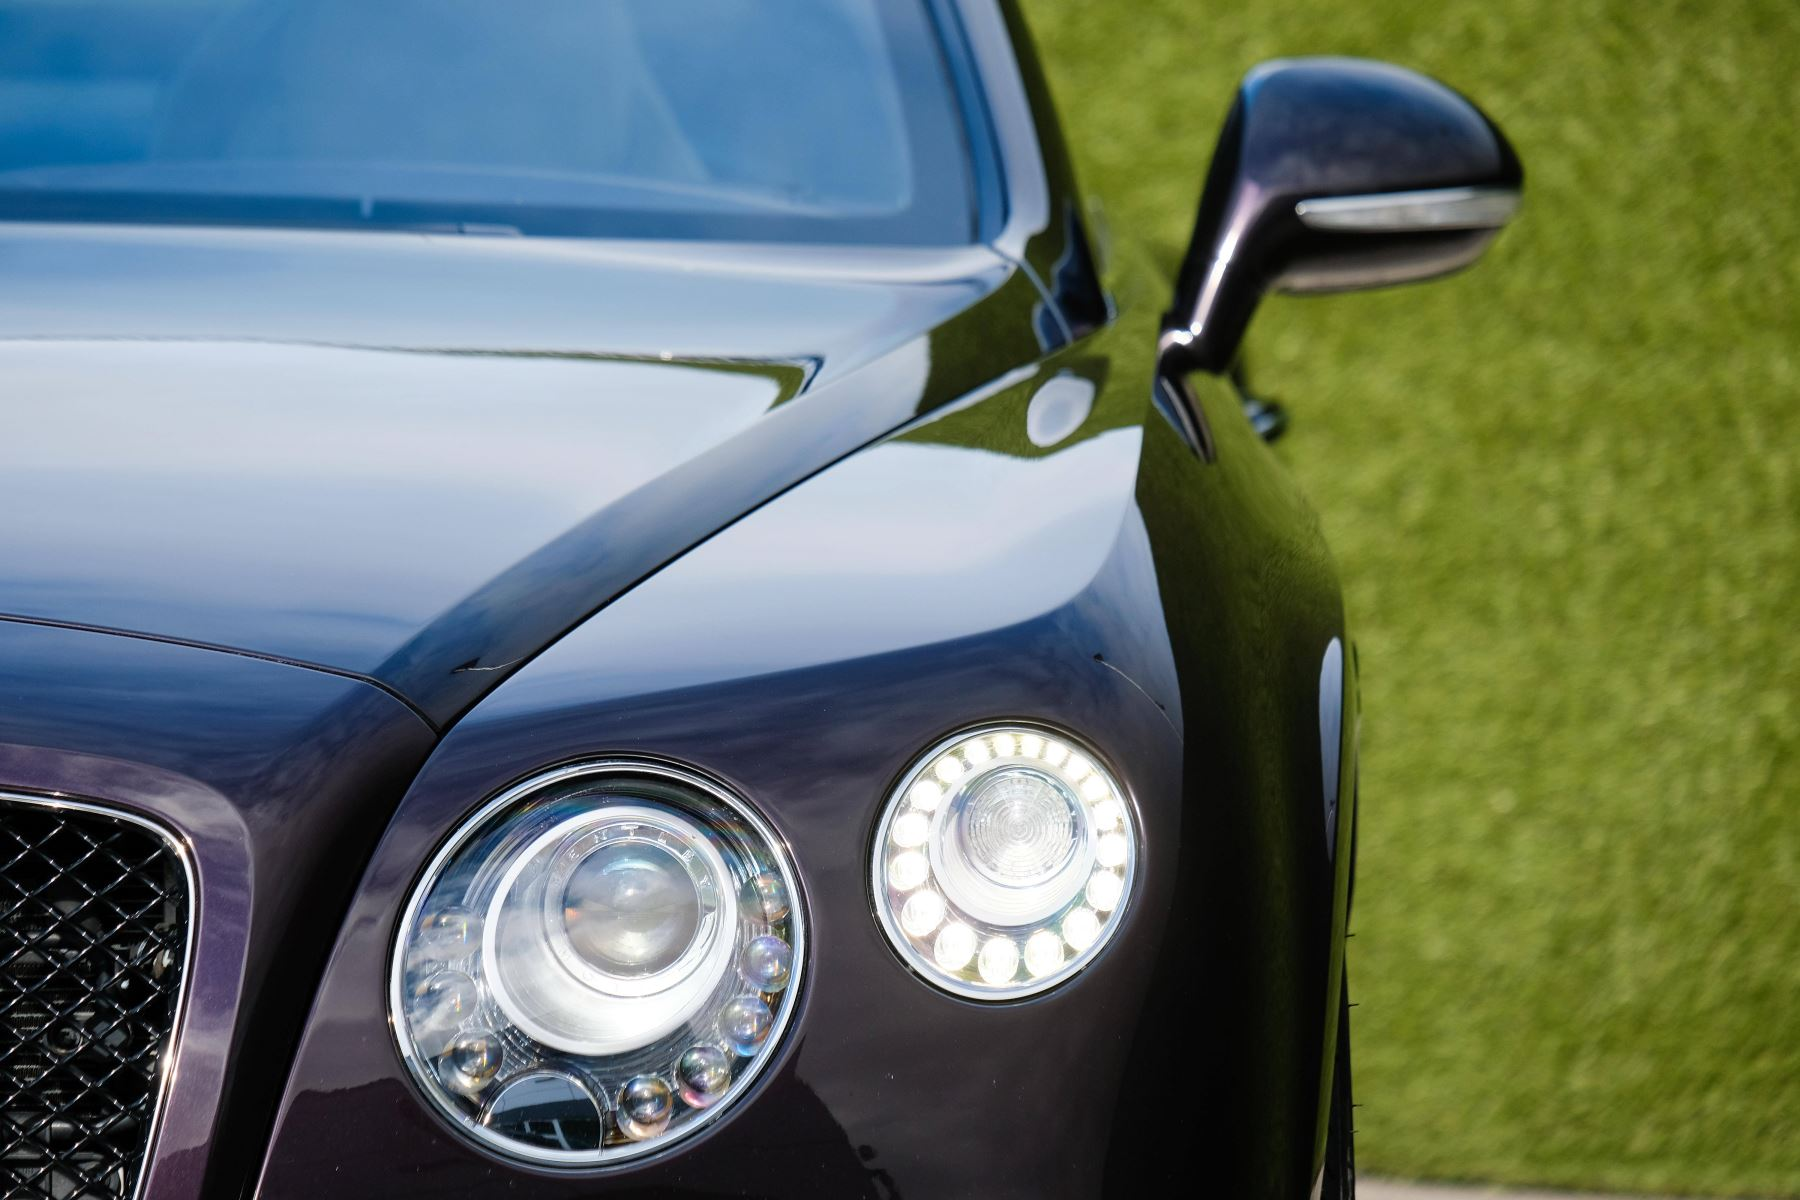 Bentley Continental GTC 4.0 V8 S Mulliner Driving Spec - Premier and All Seasons Specification image 6